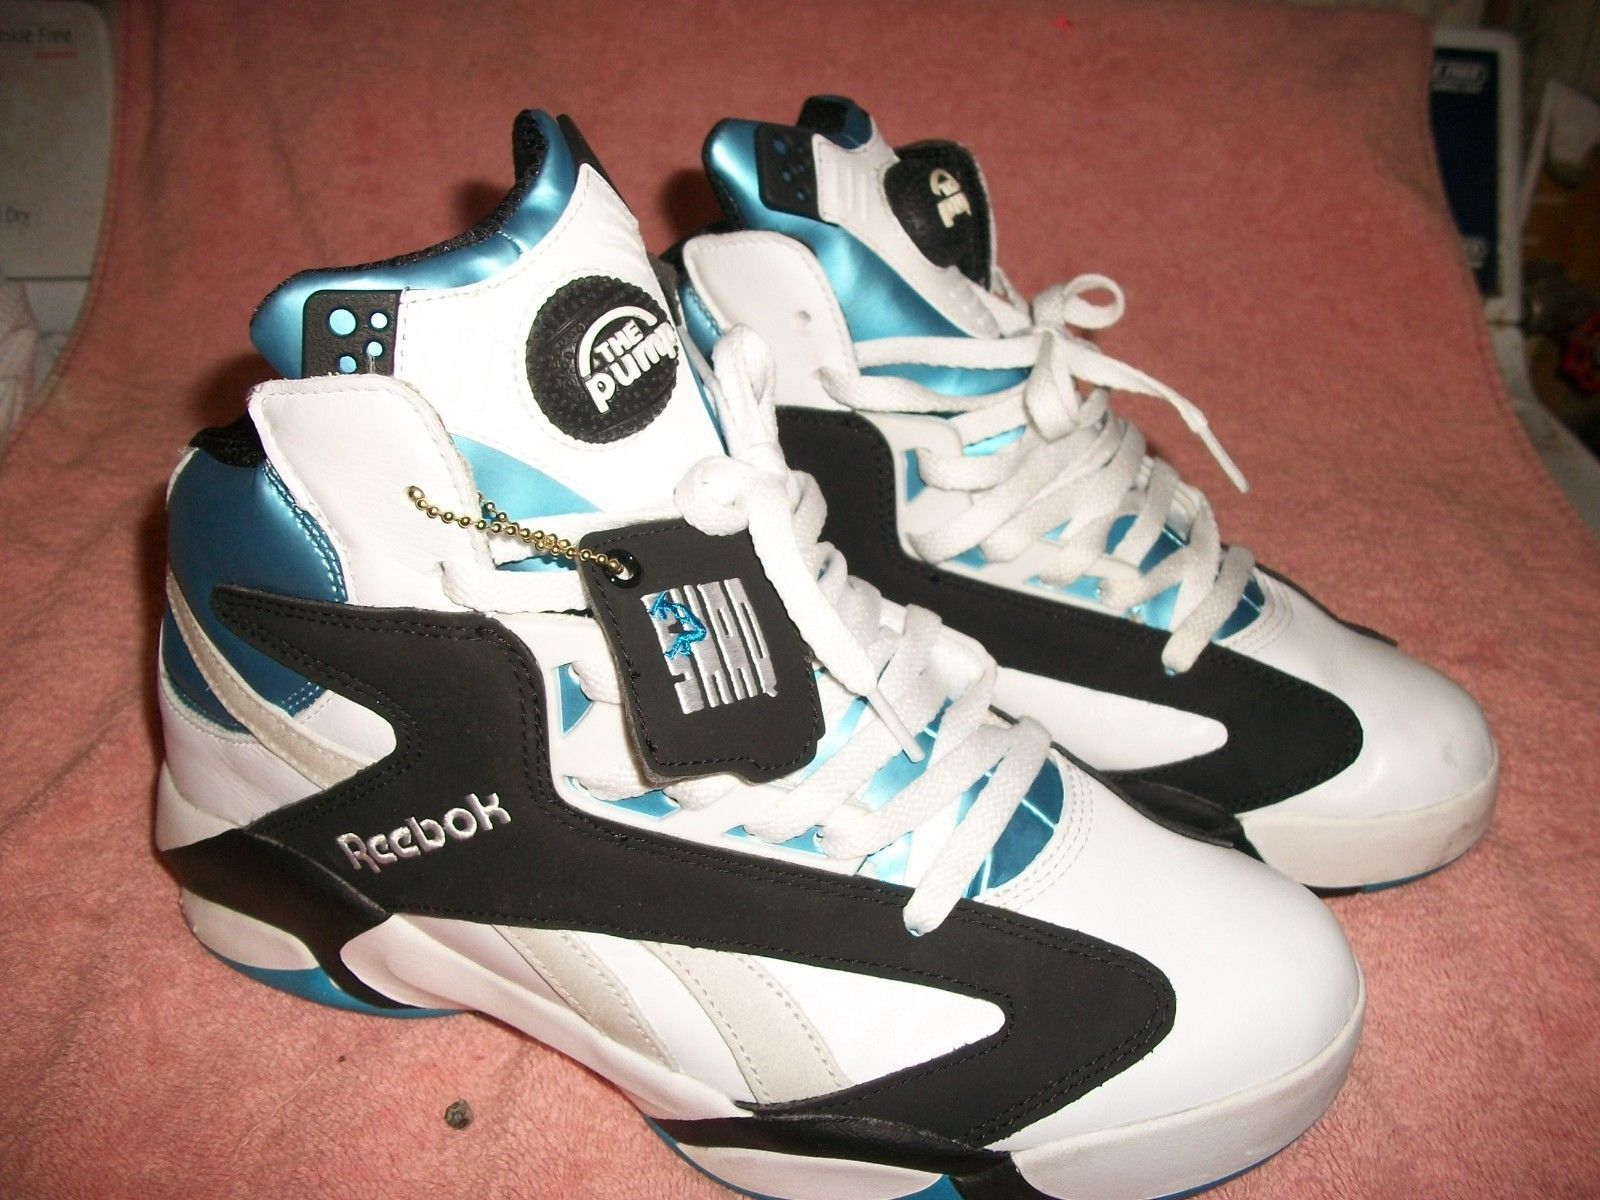 71e6f74cf0e1 MEN S REEBOK SHAQ ATTACK CLASSICS PUMPS WORN ABOUT TWICE SIZE 10 IN BOX  PERFECT